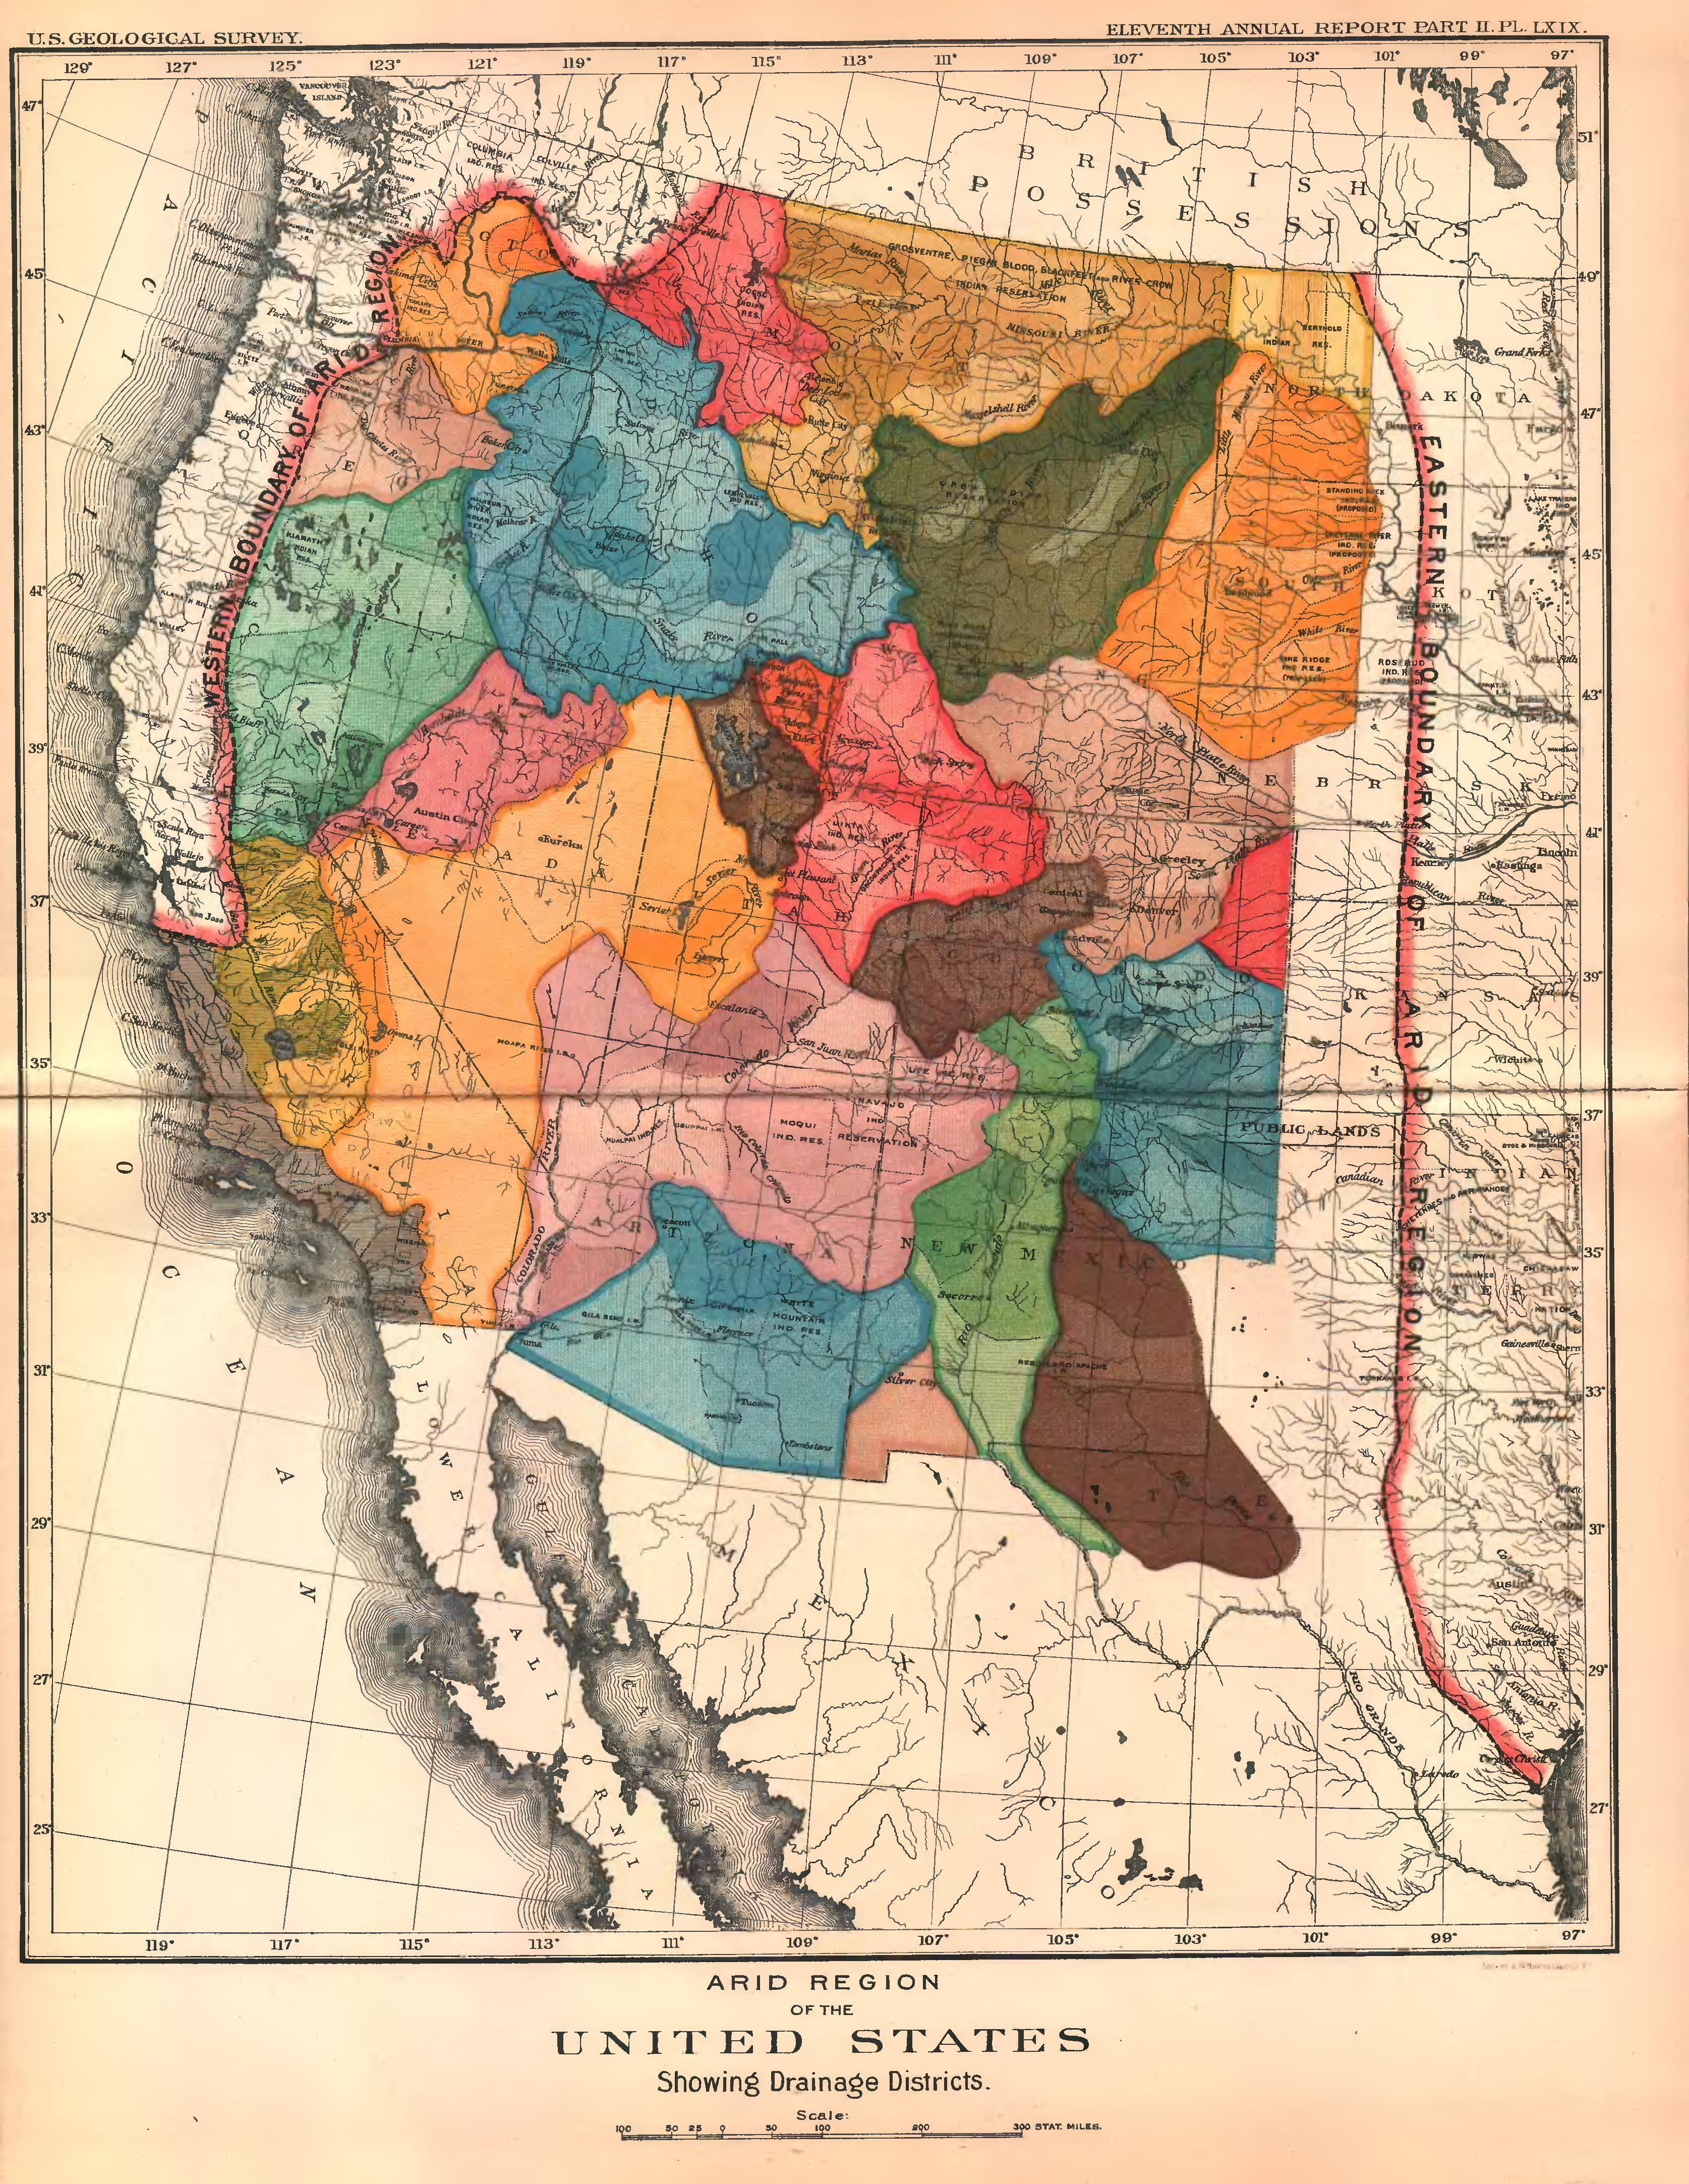 Powell's map